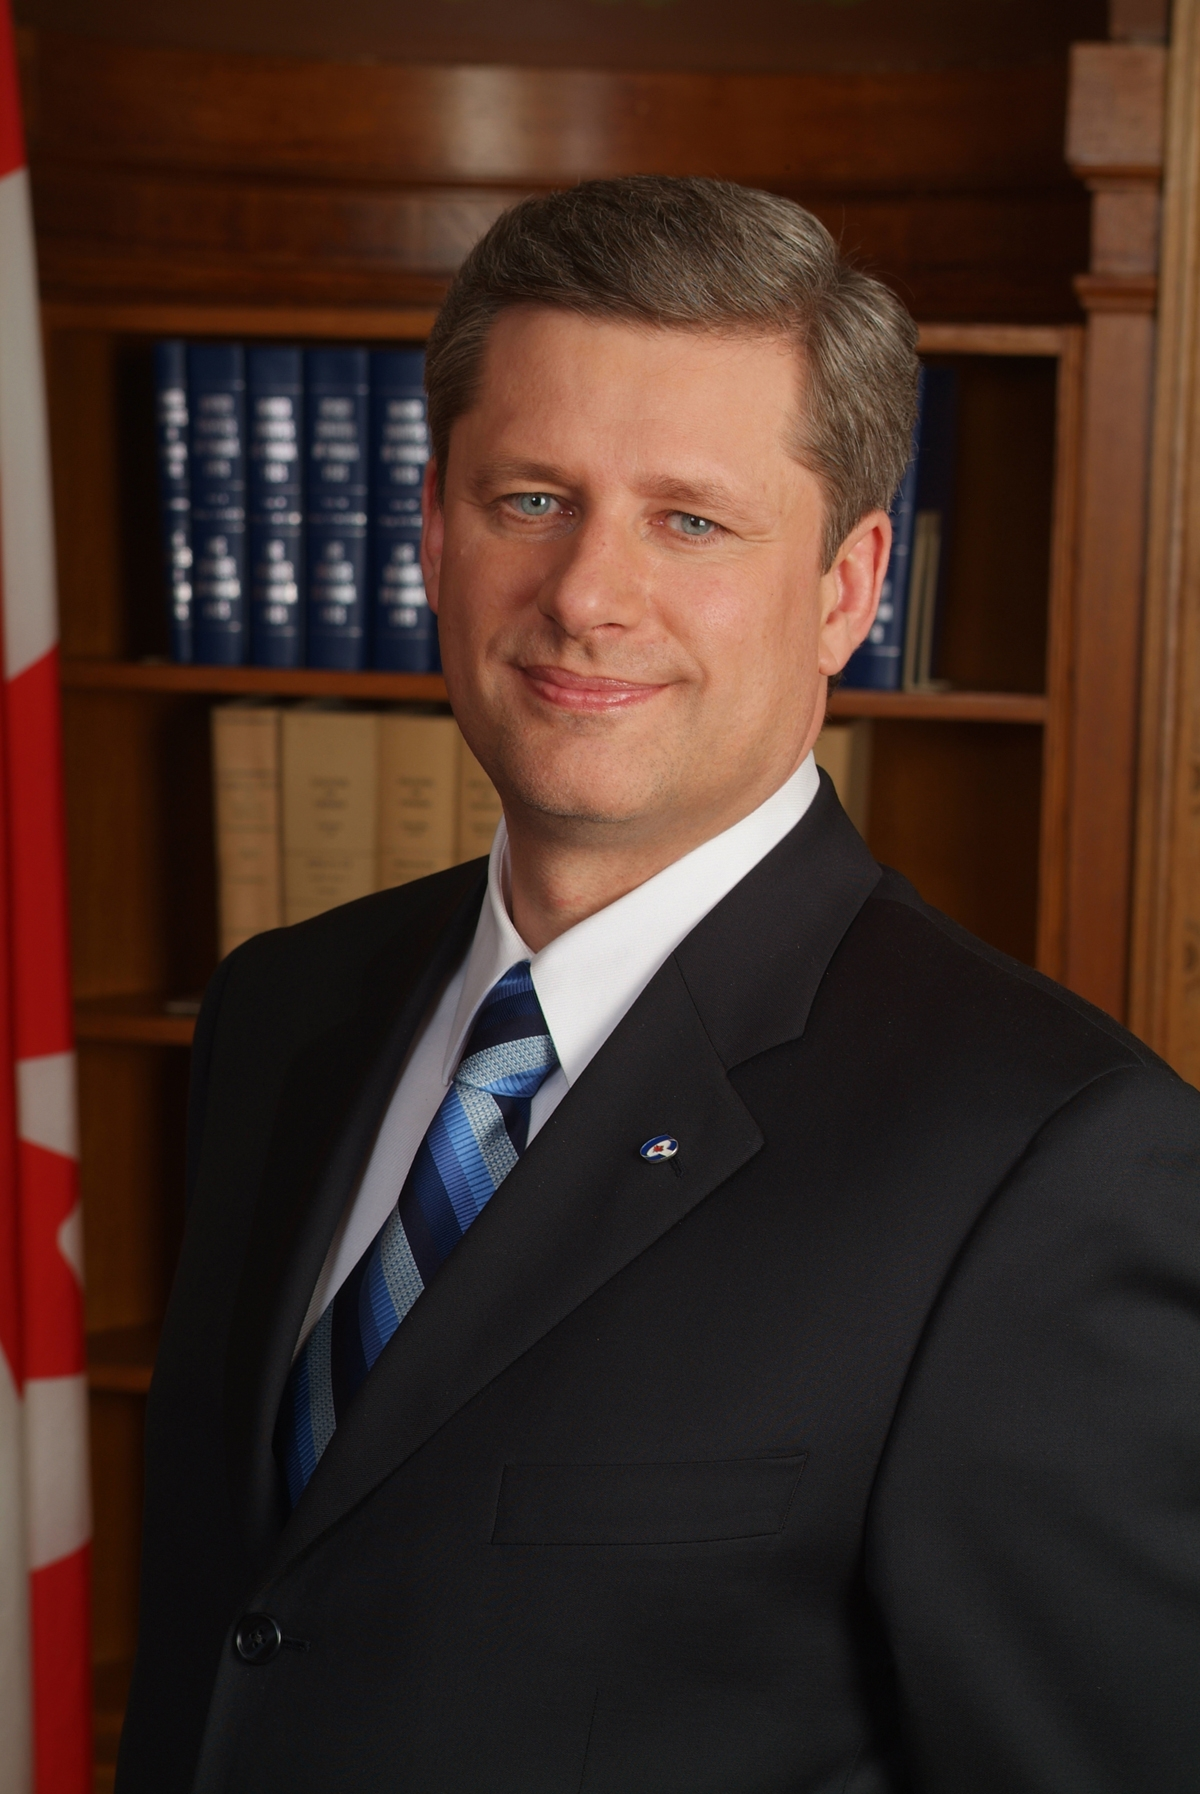 photo of Stephen Harper